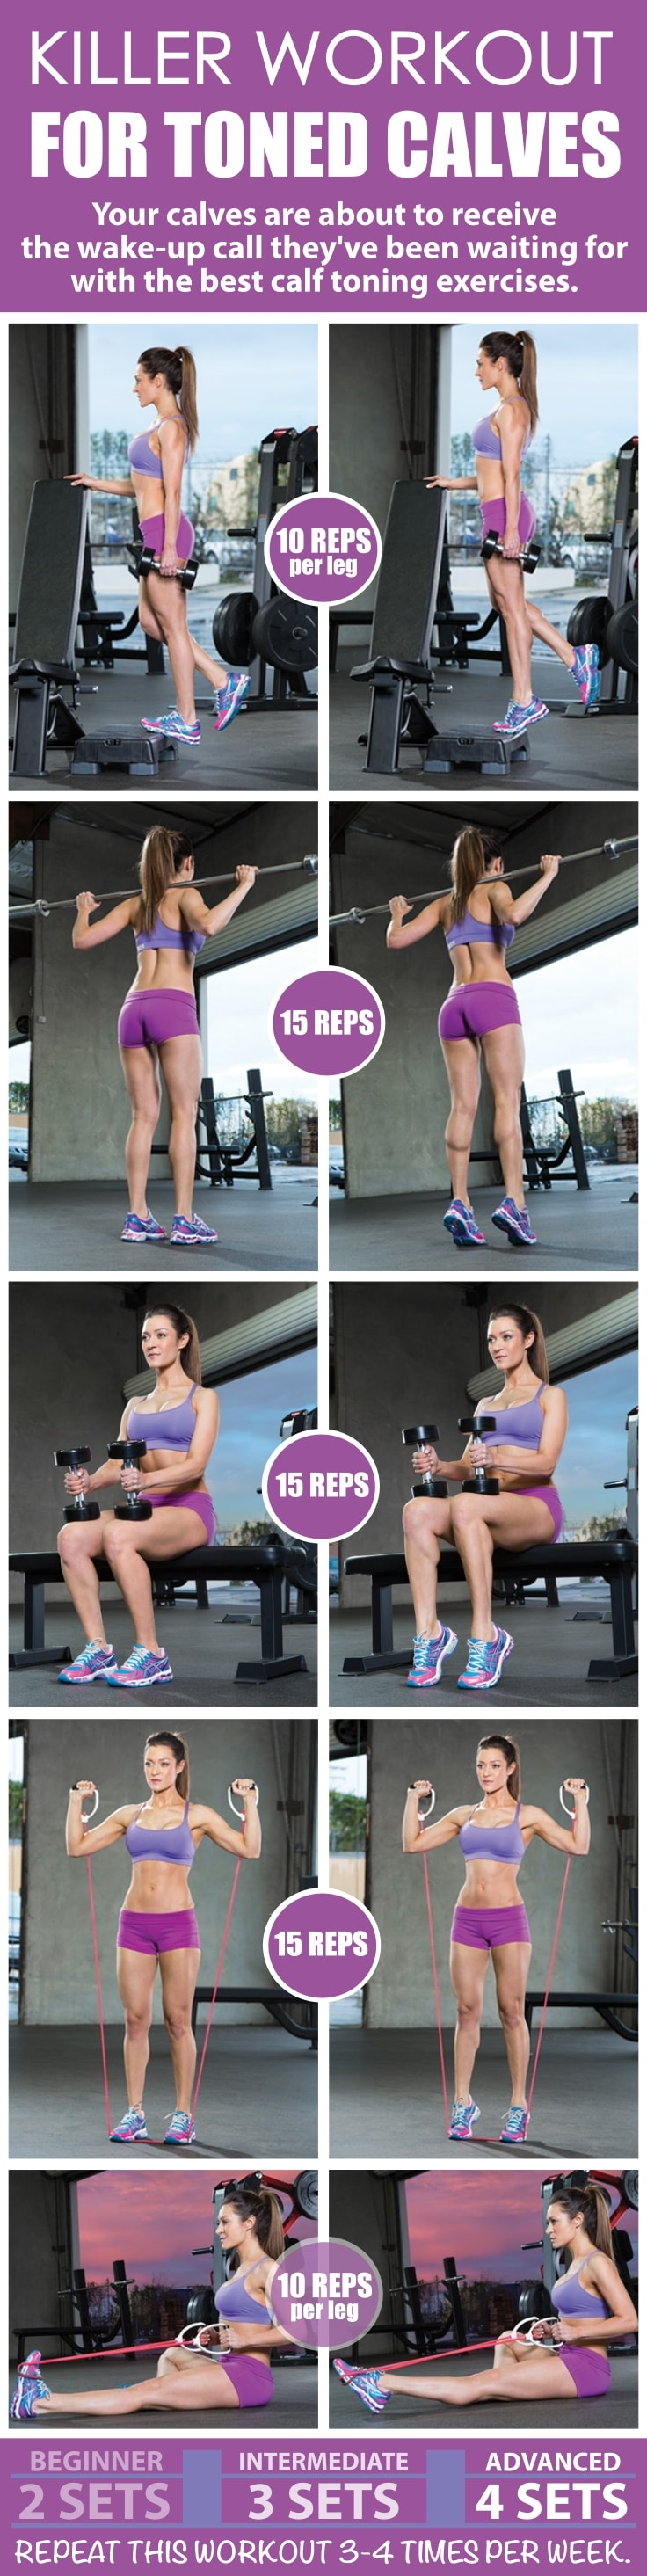 Workout for Toned Calves